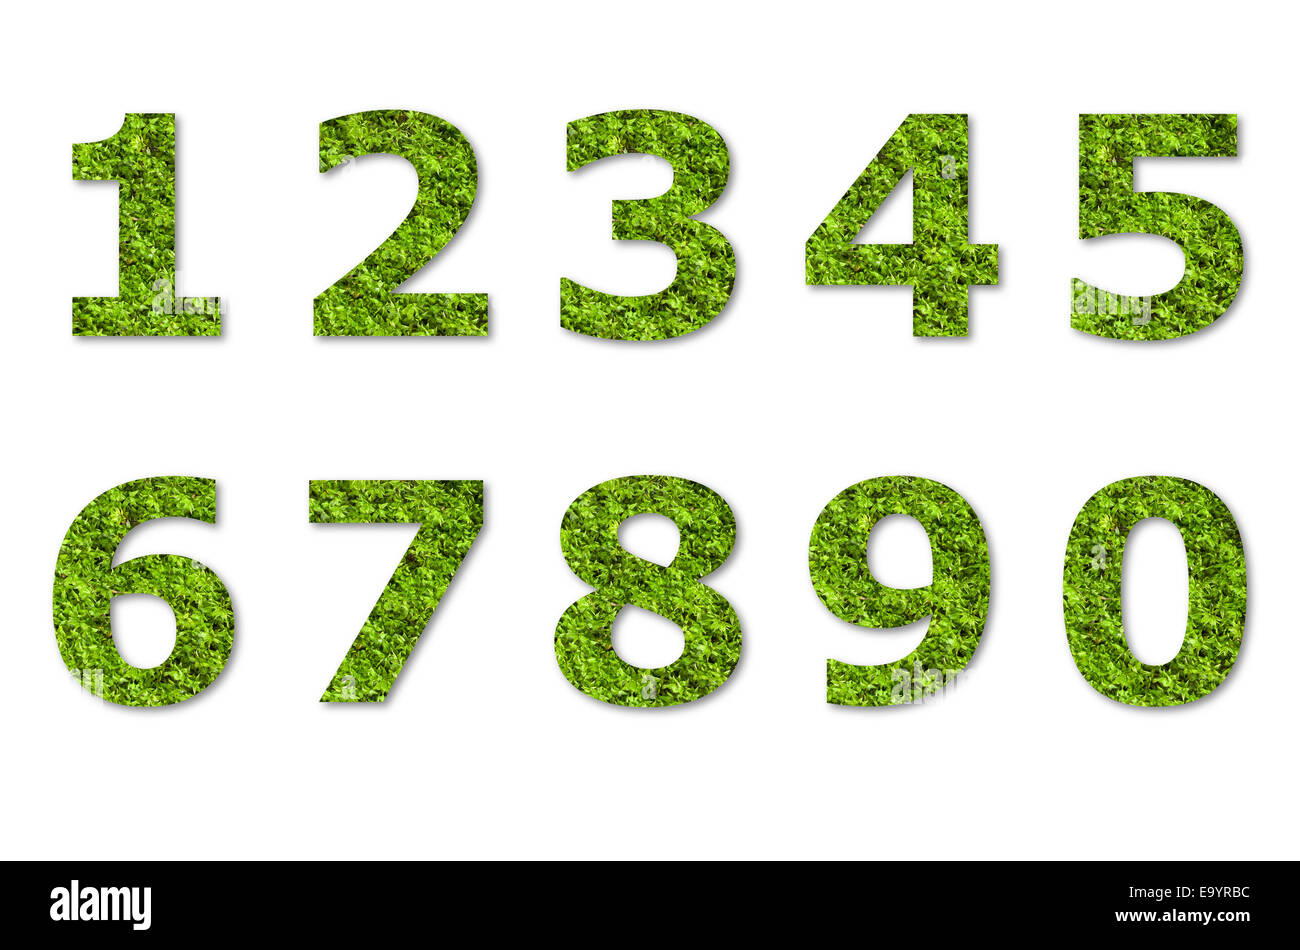 arabic numeric of green lichen isolated on white - Stock Image